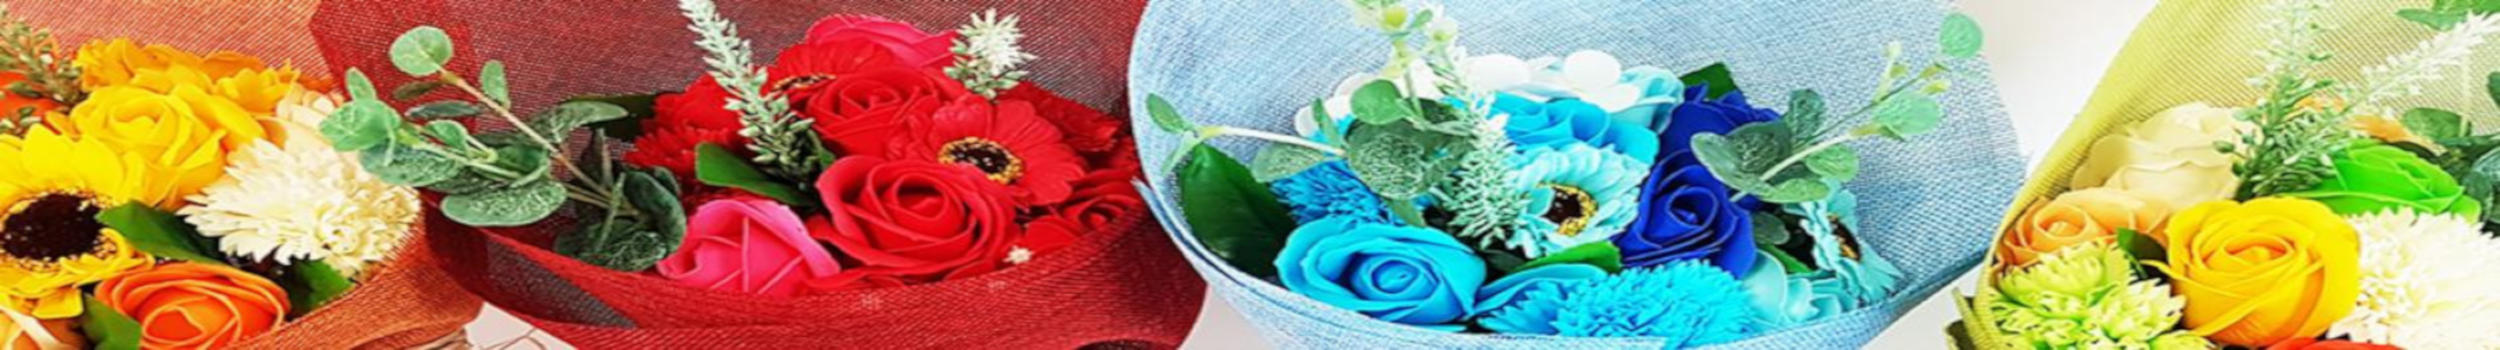 Soap Flower Bouquets Category Banner